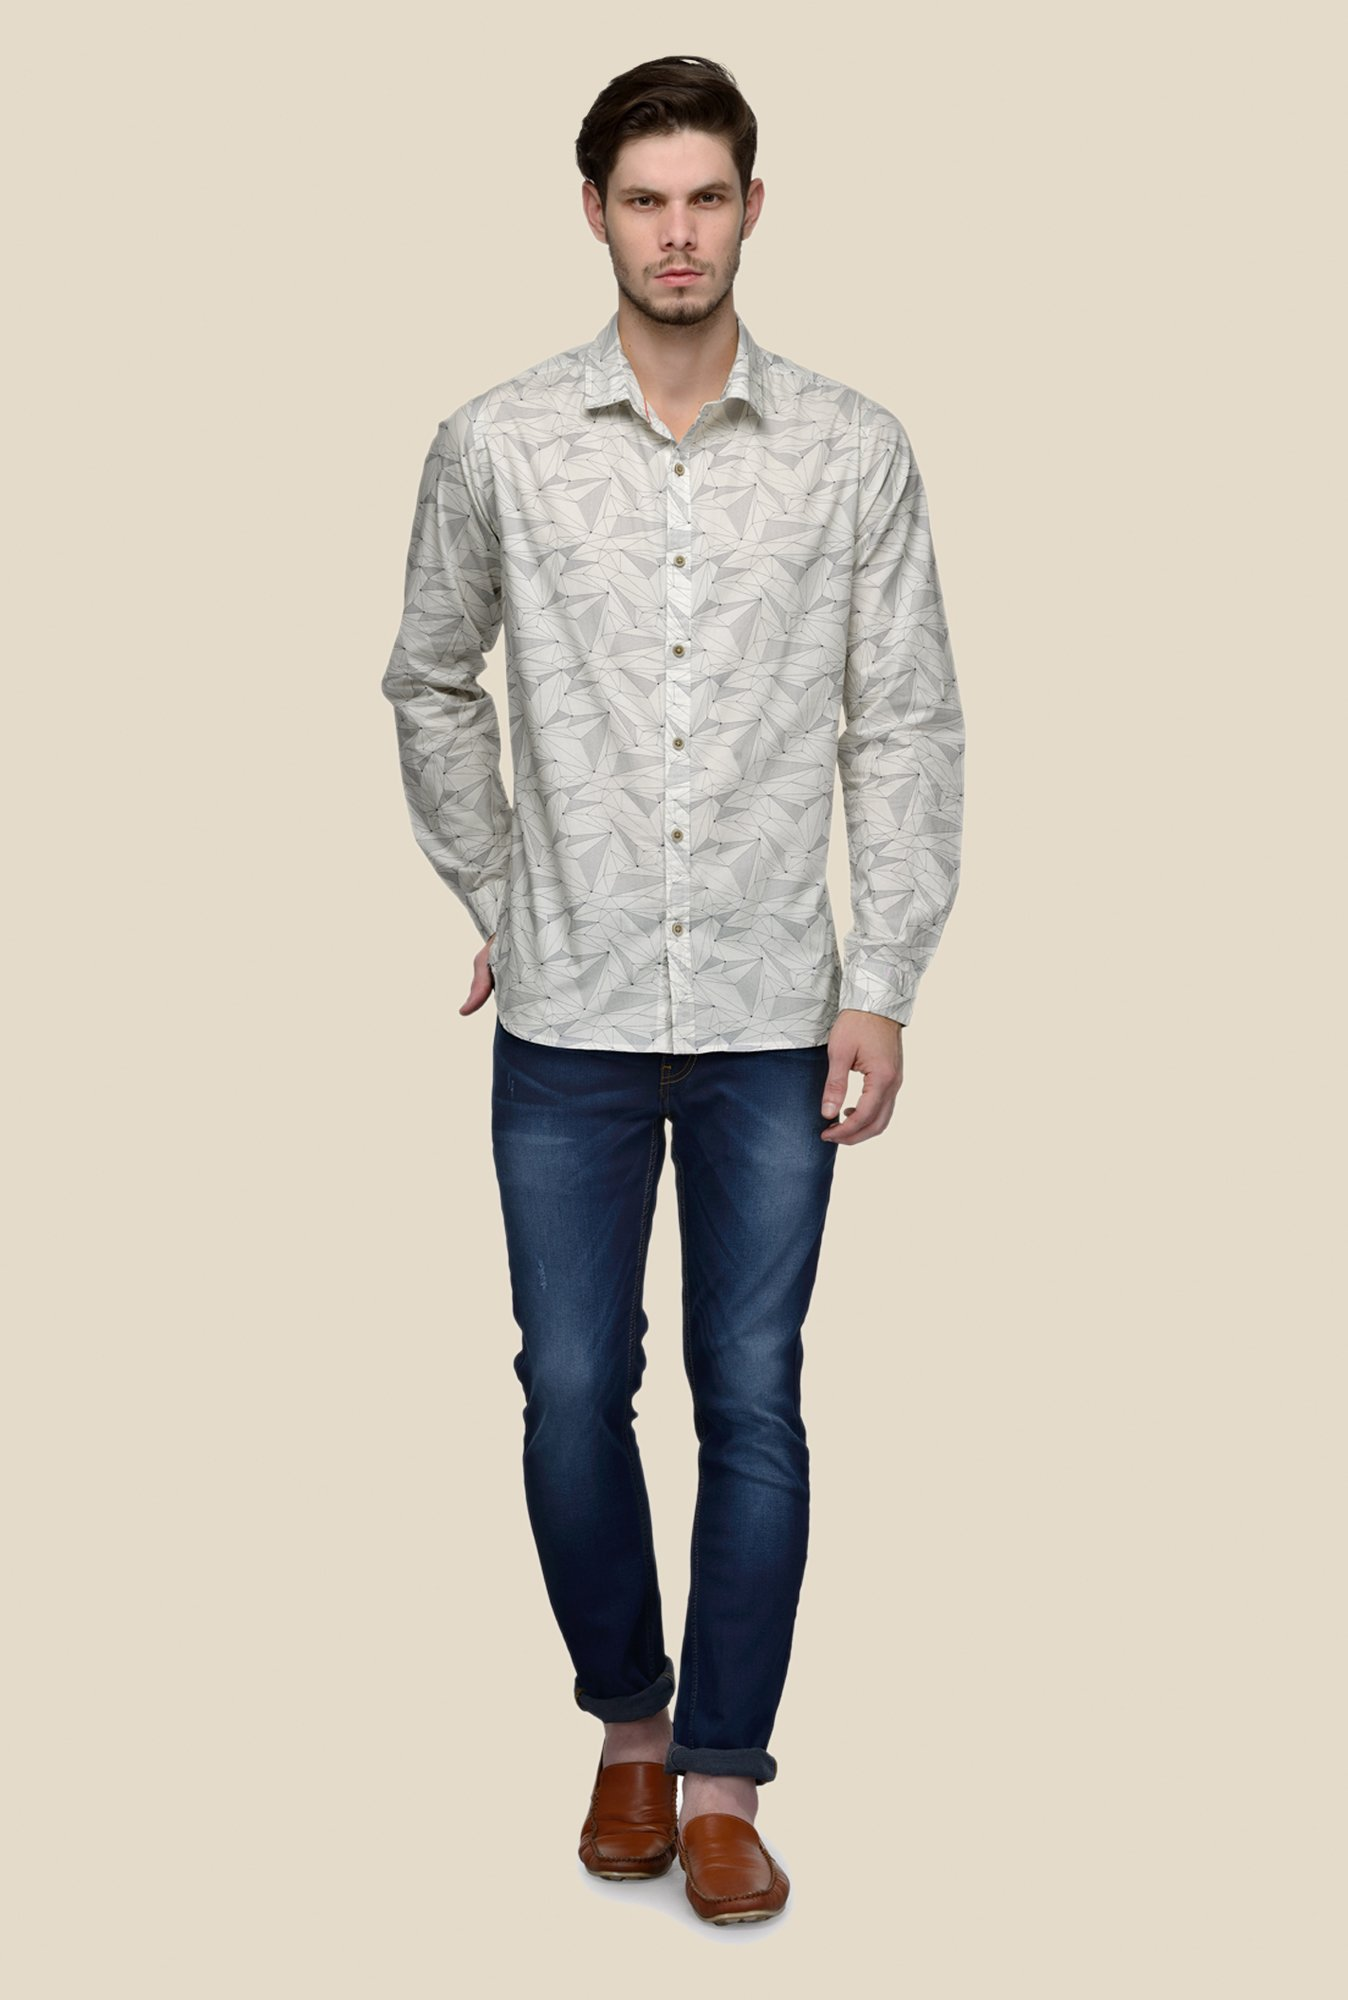 United Colors of Benetton Beige Geometric Print Shirt